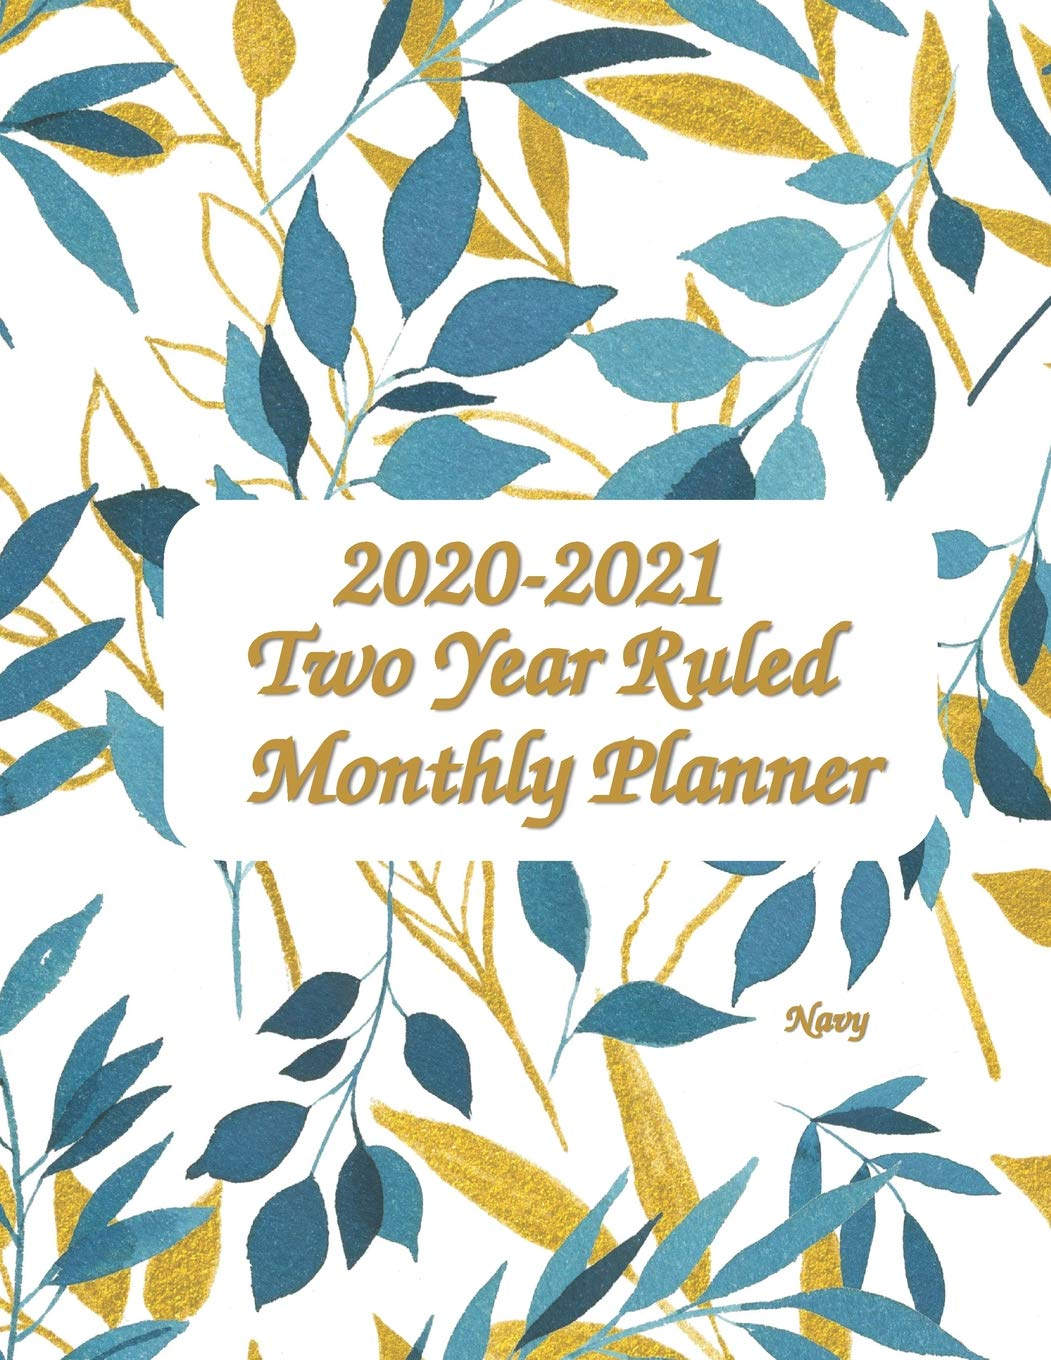 2020-2021 Two Year Ruled Monthly Planner - Navy 8.5x11: 8.5 ...